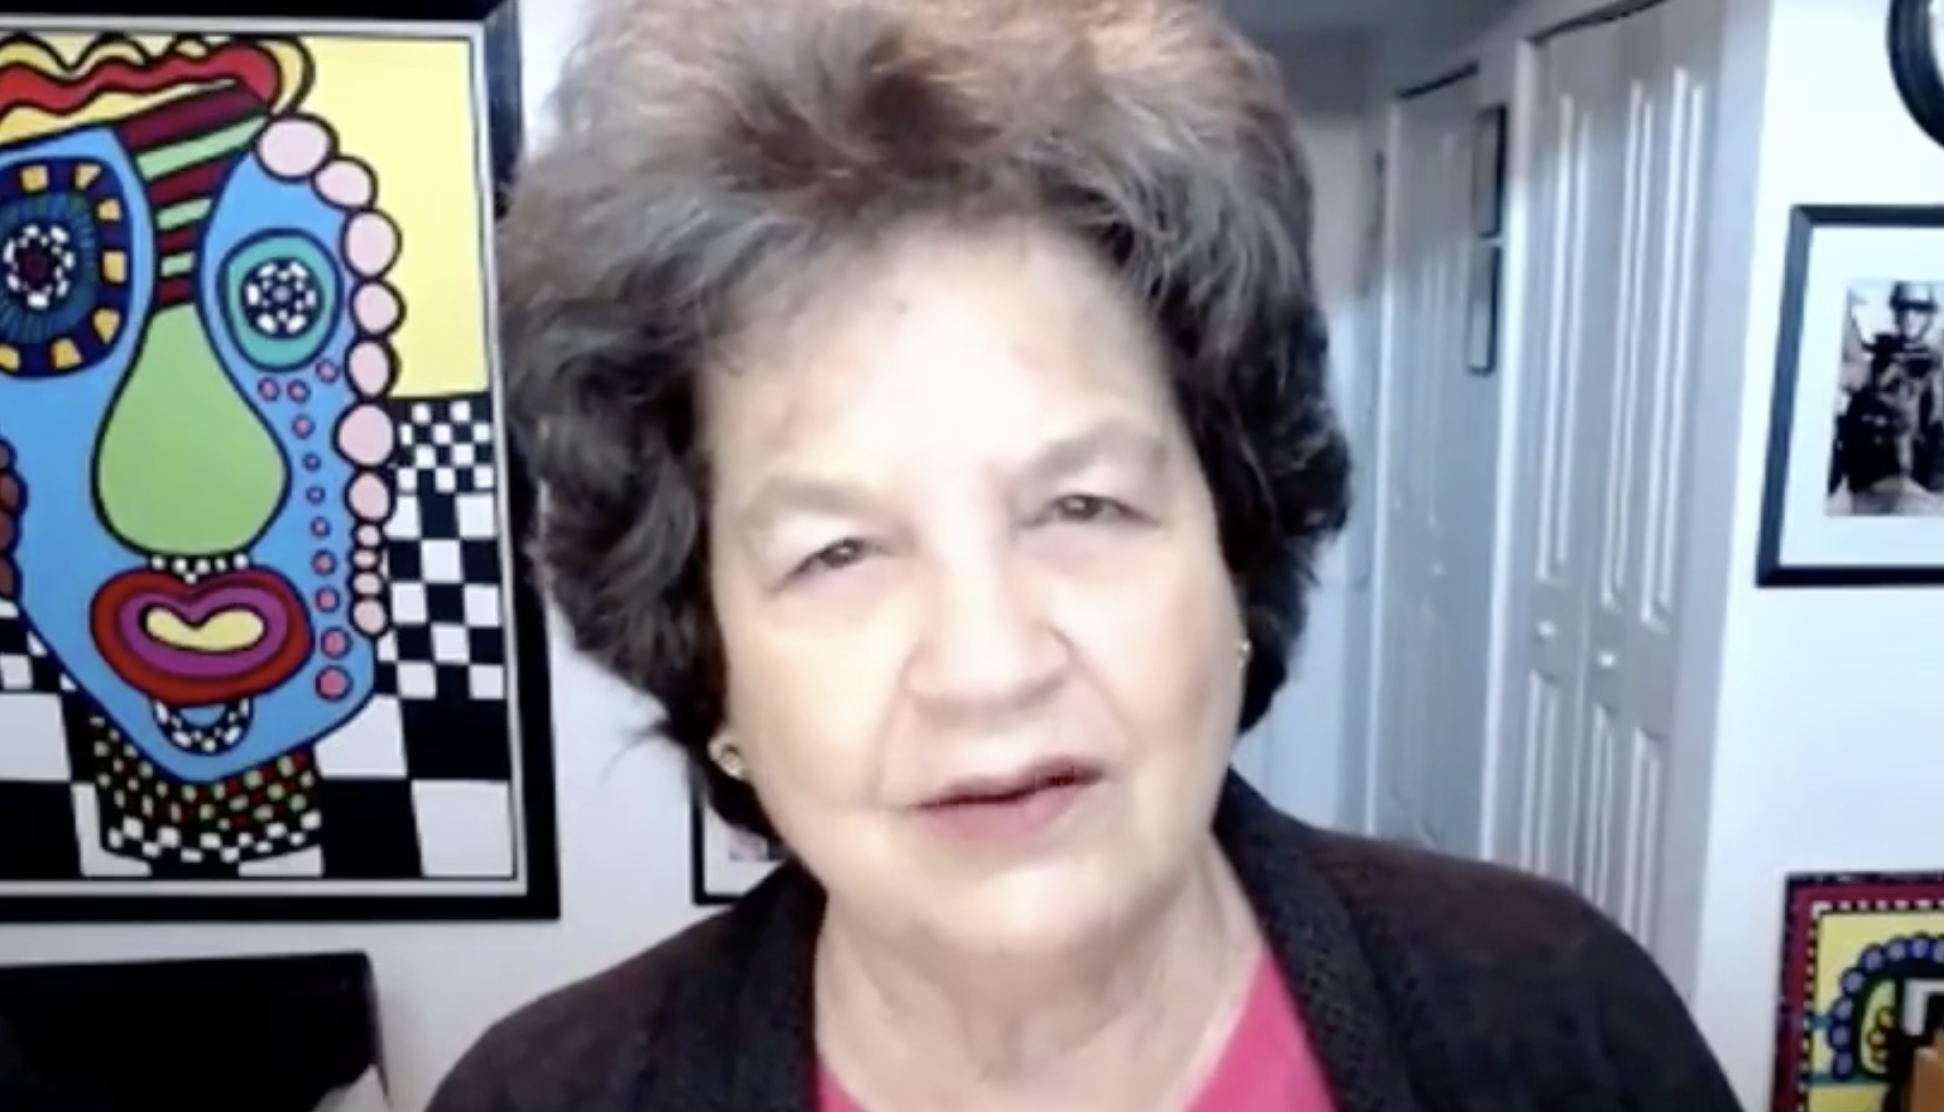 Like Joe Biden, Lois Frankel incorrectly says '200 million' Americans have died from COVID